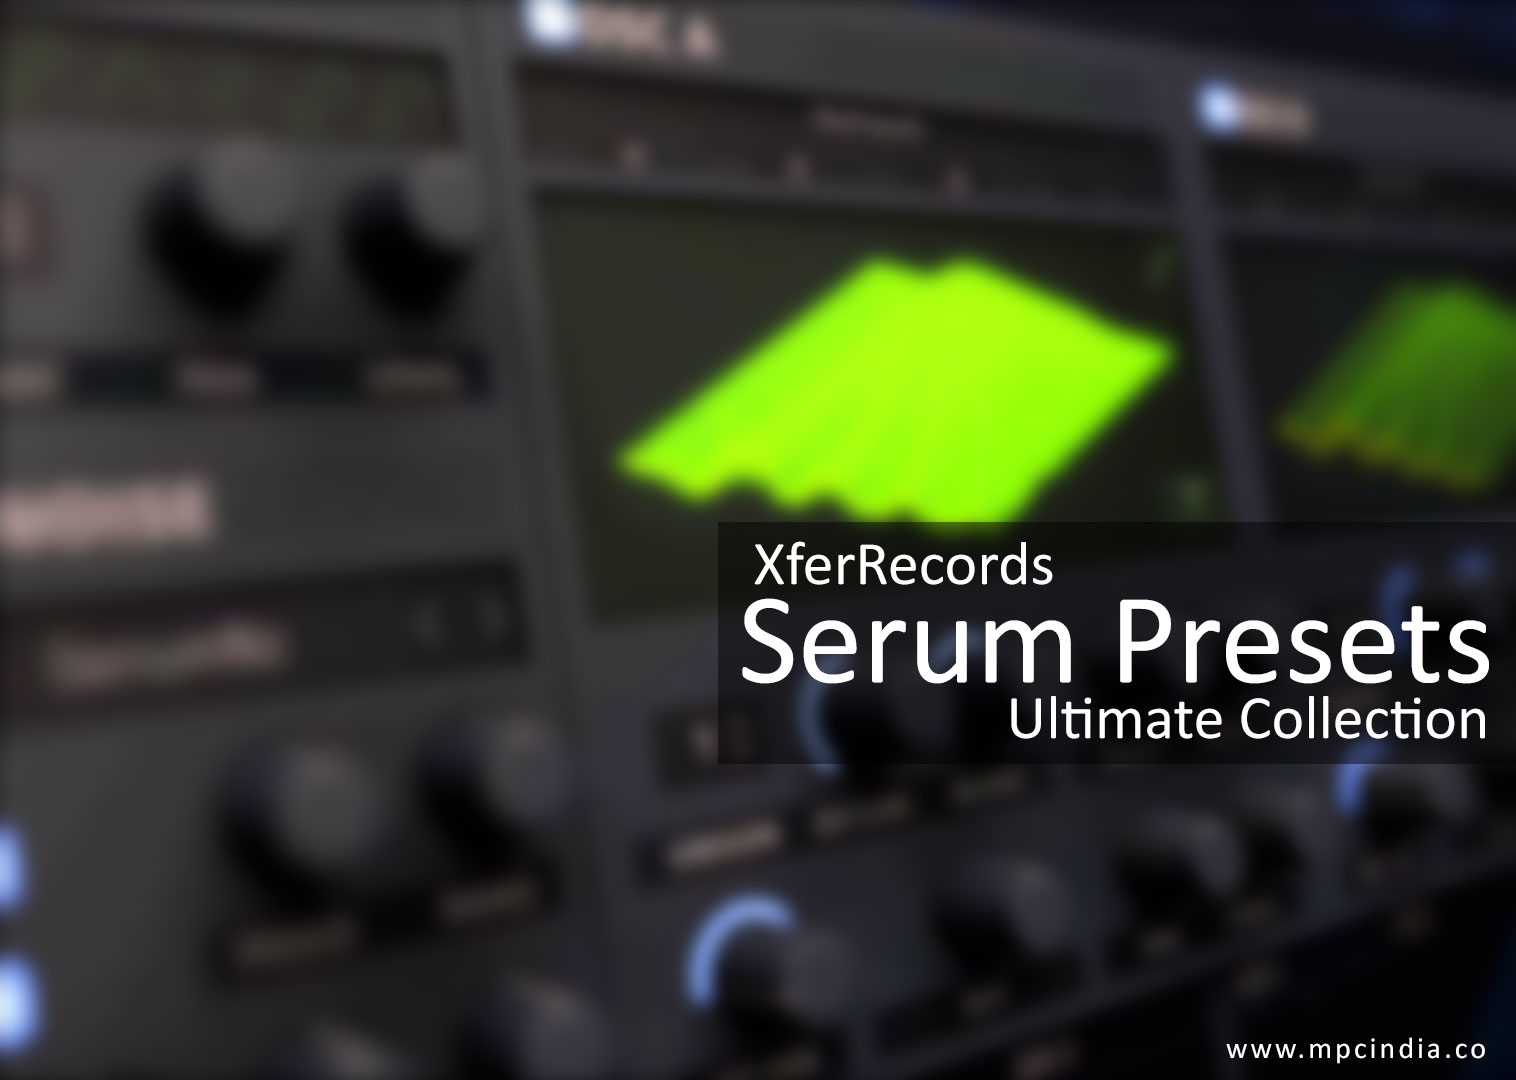 Simple Serum Is A Quality Synsizer From Steve Duda At Serum Presets Ultimate Collection Over Serum Vst Plugin Xfer Serum Crack Free Xfer Records Serum Crack Windows houzz-02 Xfer Serum Crack